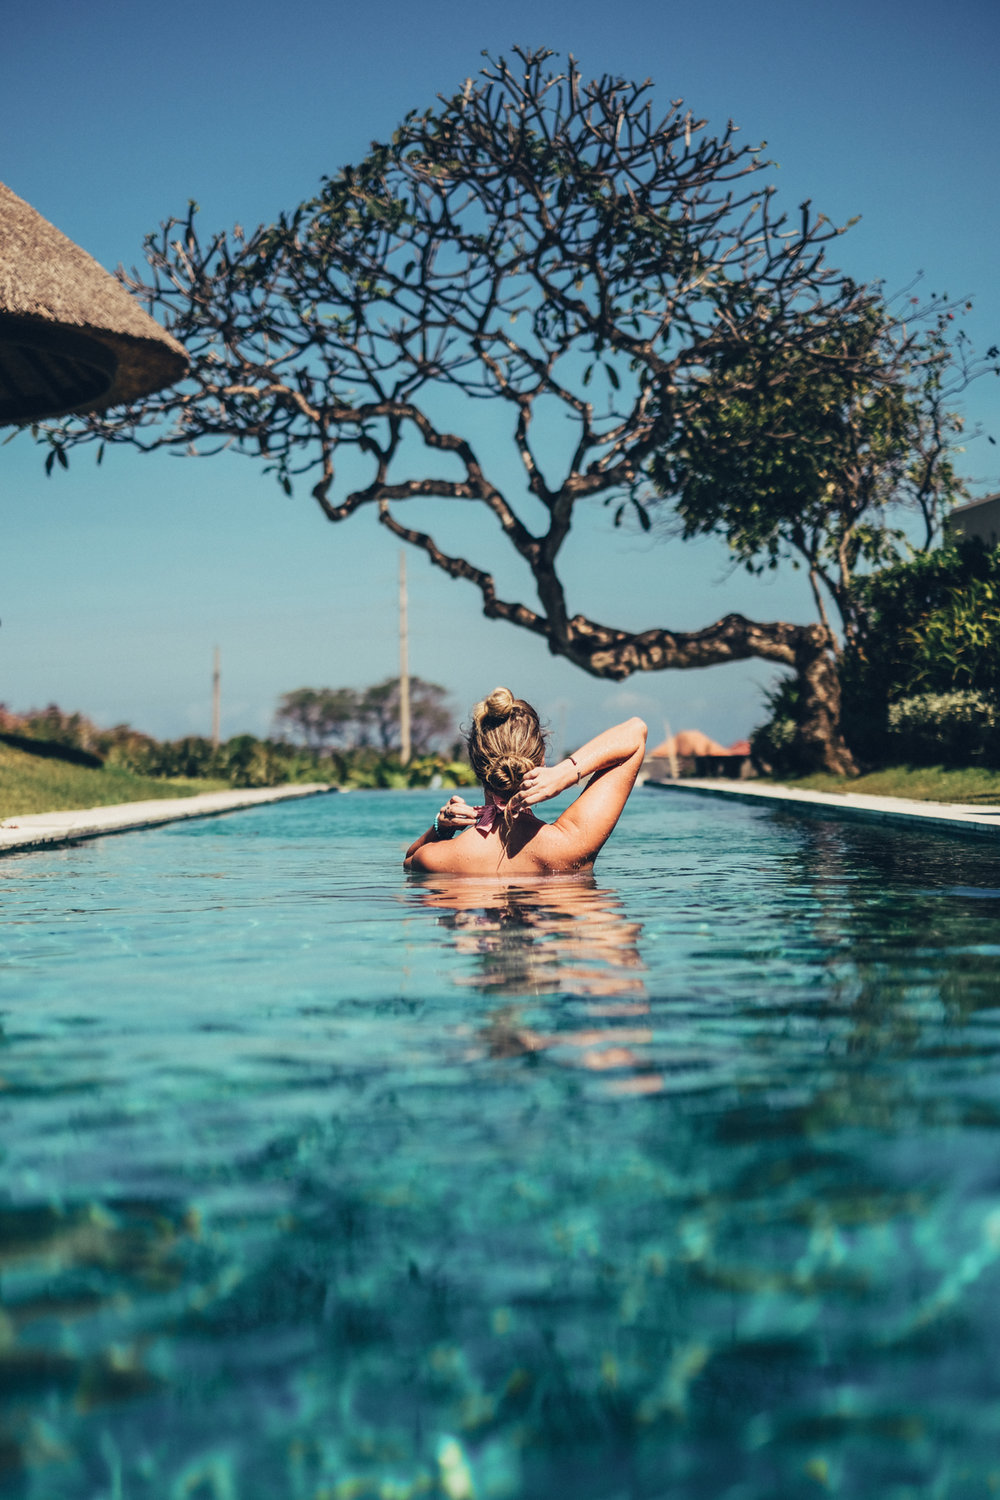 Lifestyle Retreats Bali - Bespoke Instagram Content